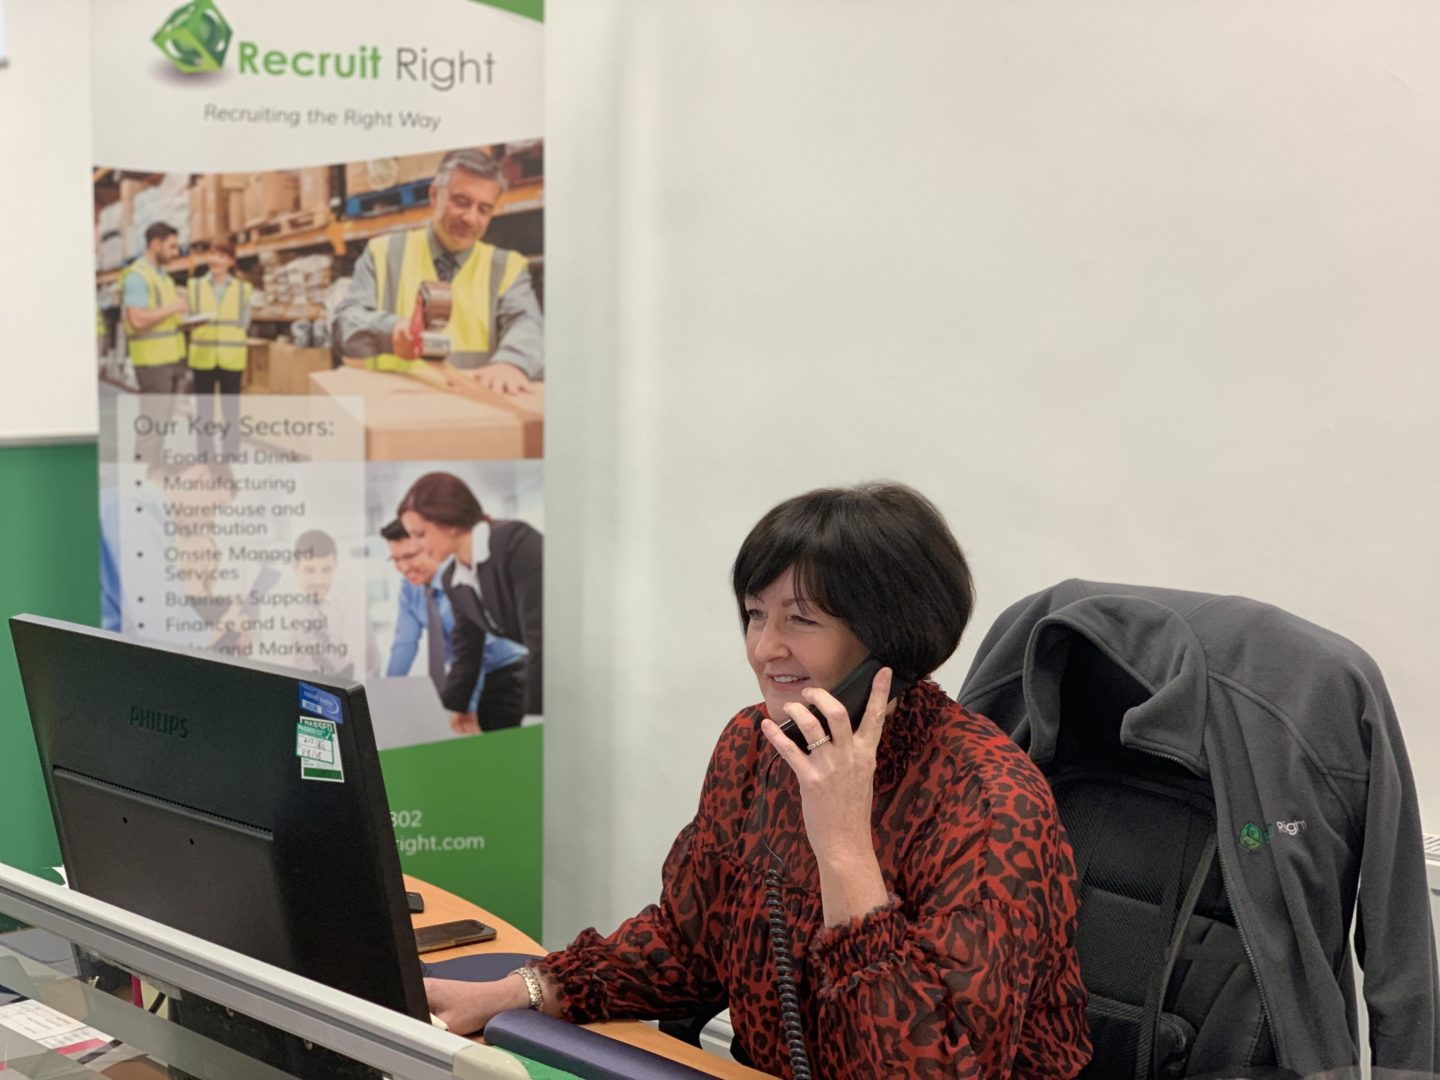 Recruit Right and The Contact Company champion change to improve workplace mental health